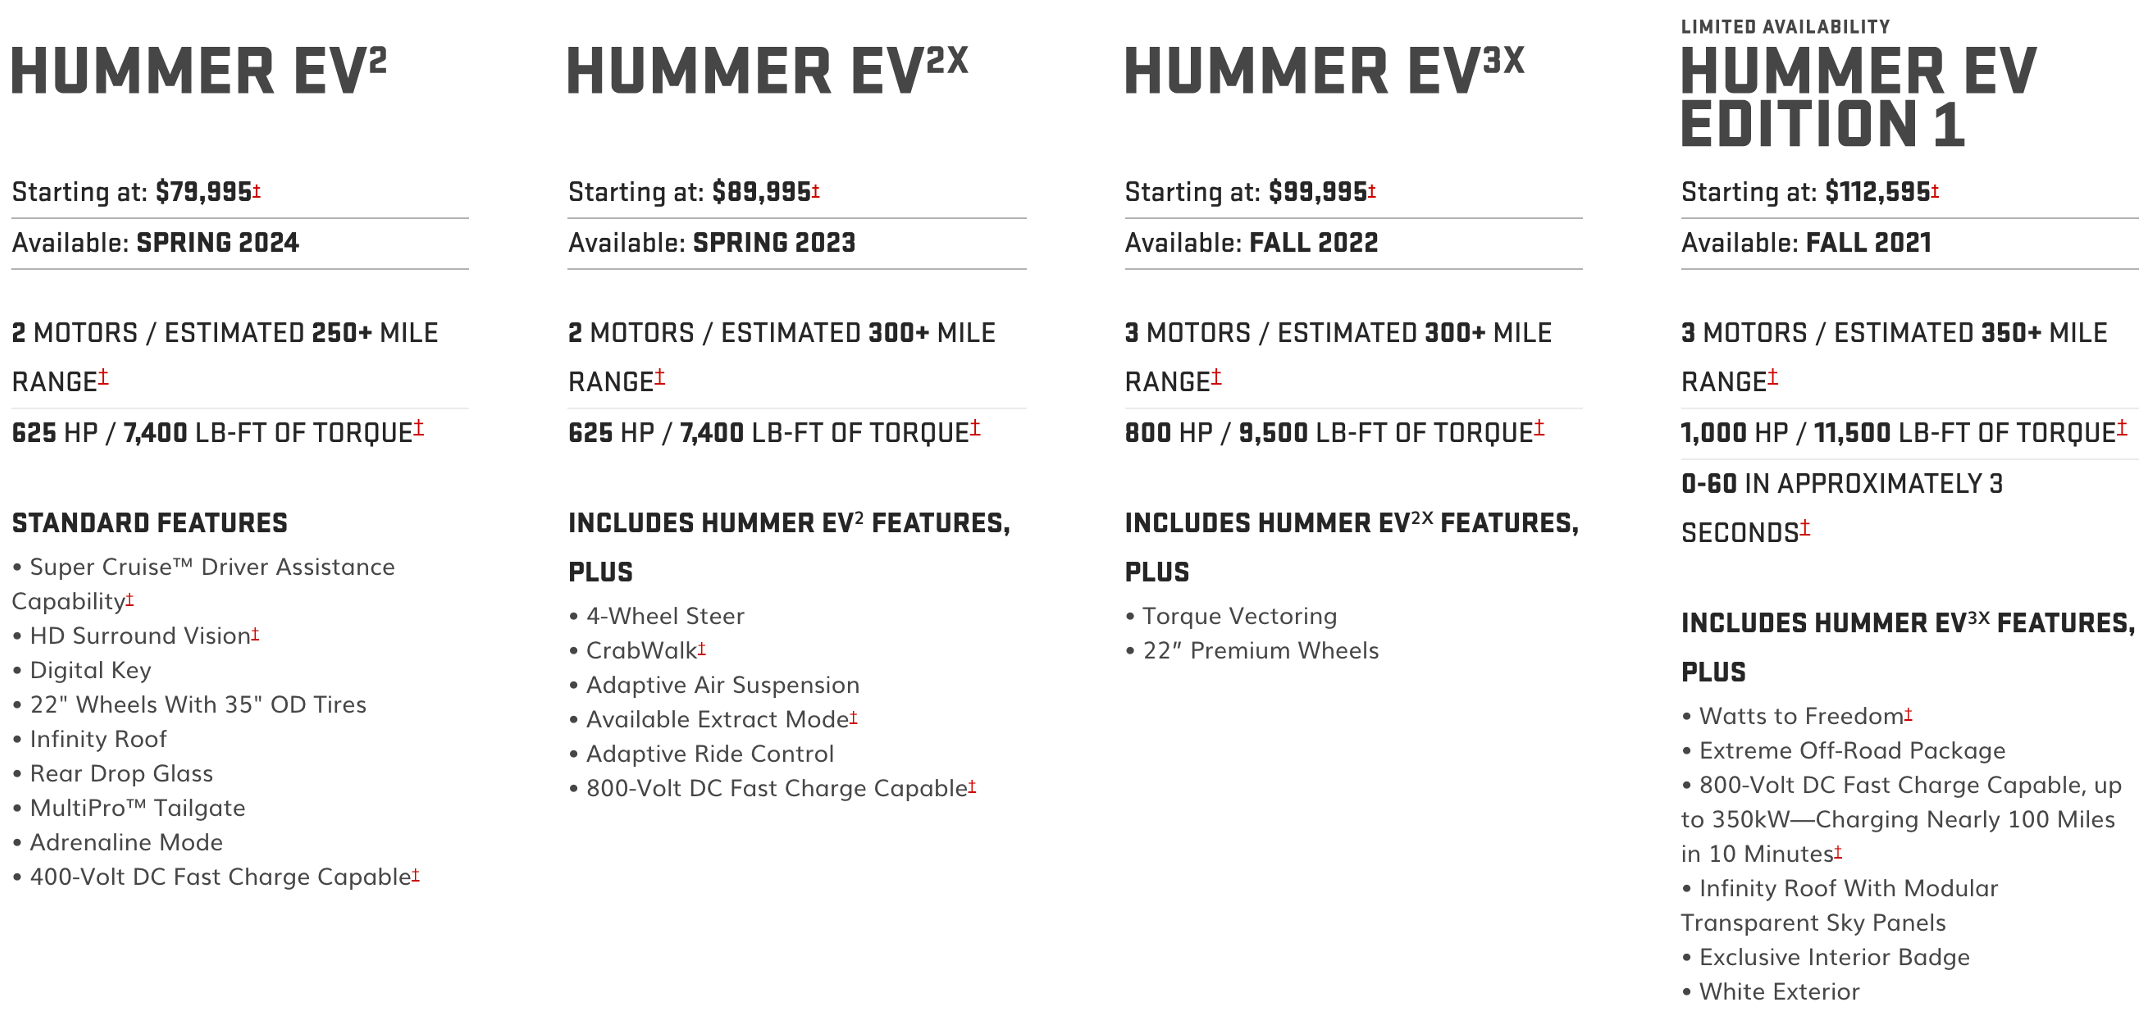 GMC HUMMER versions-specs-pricing-availability